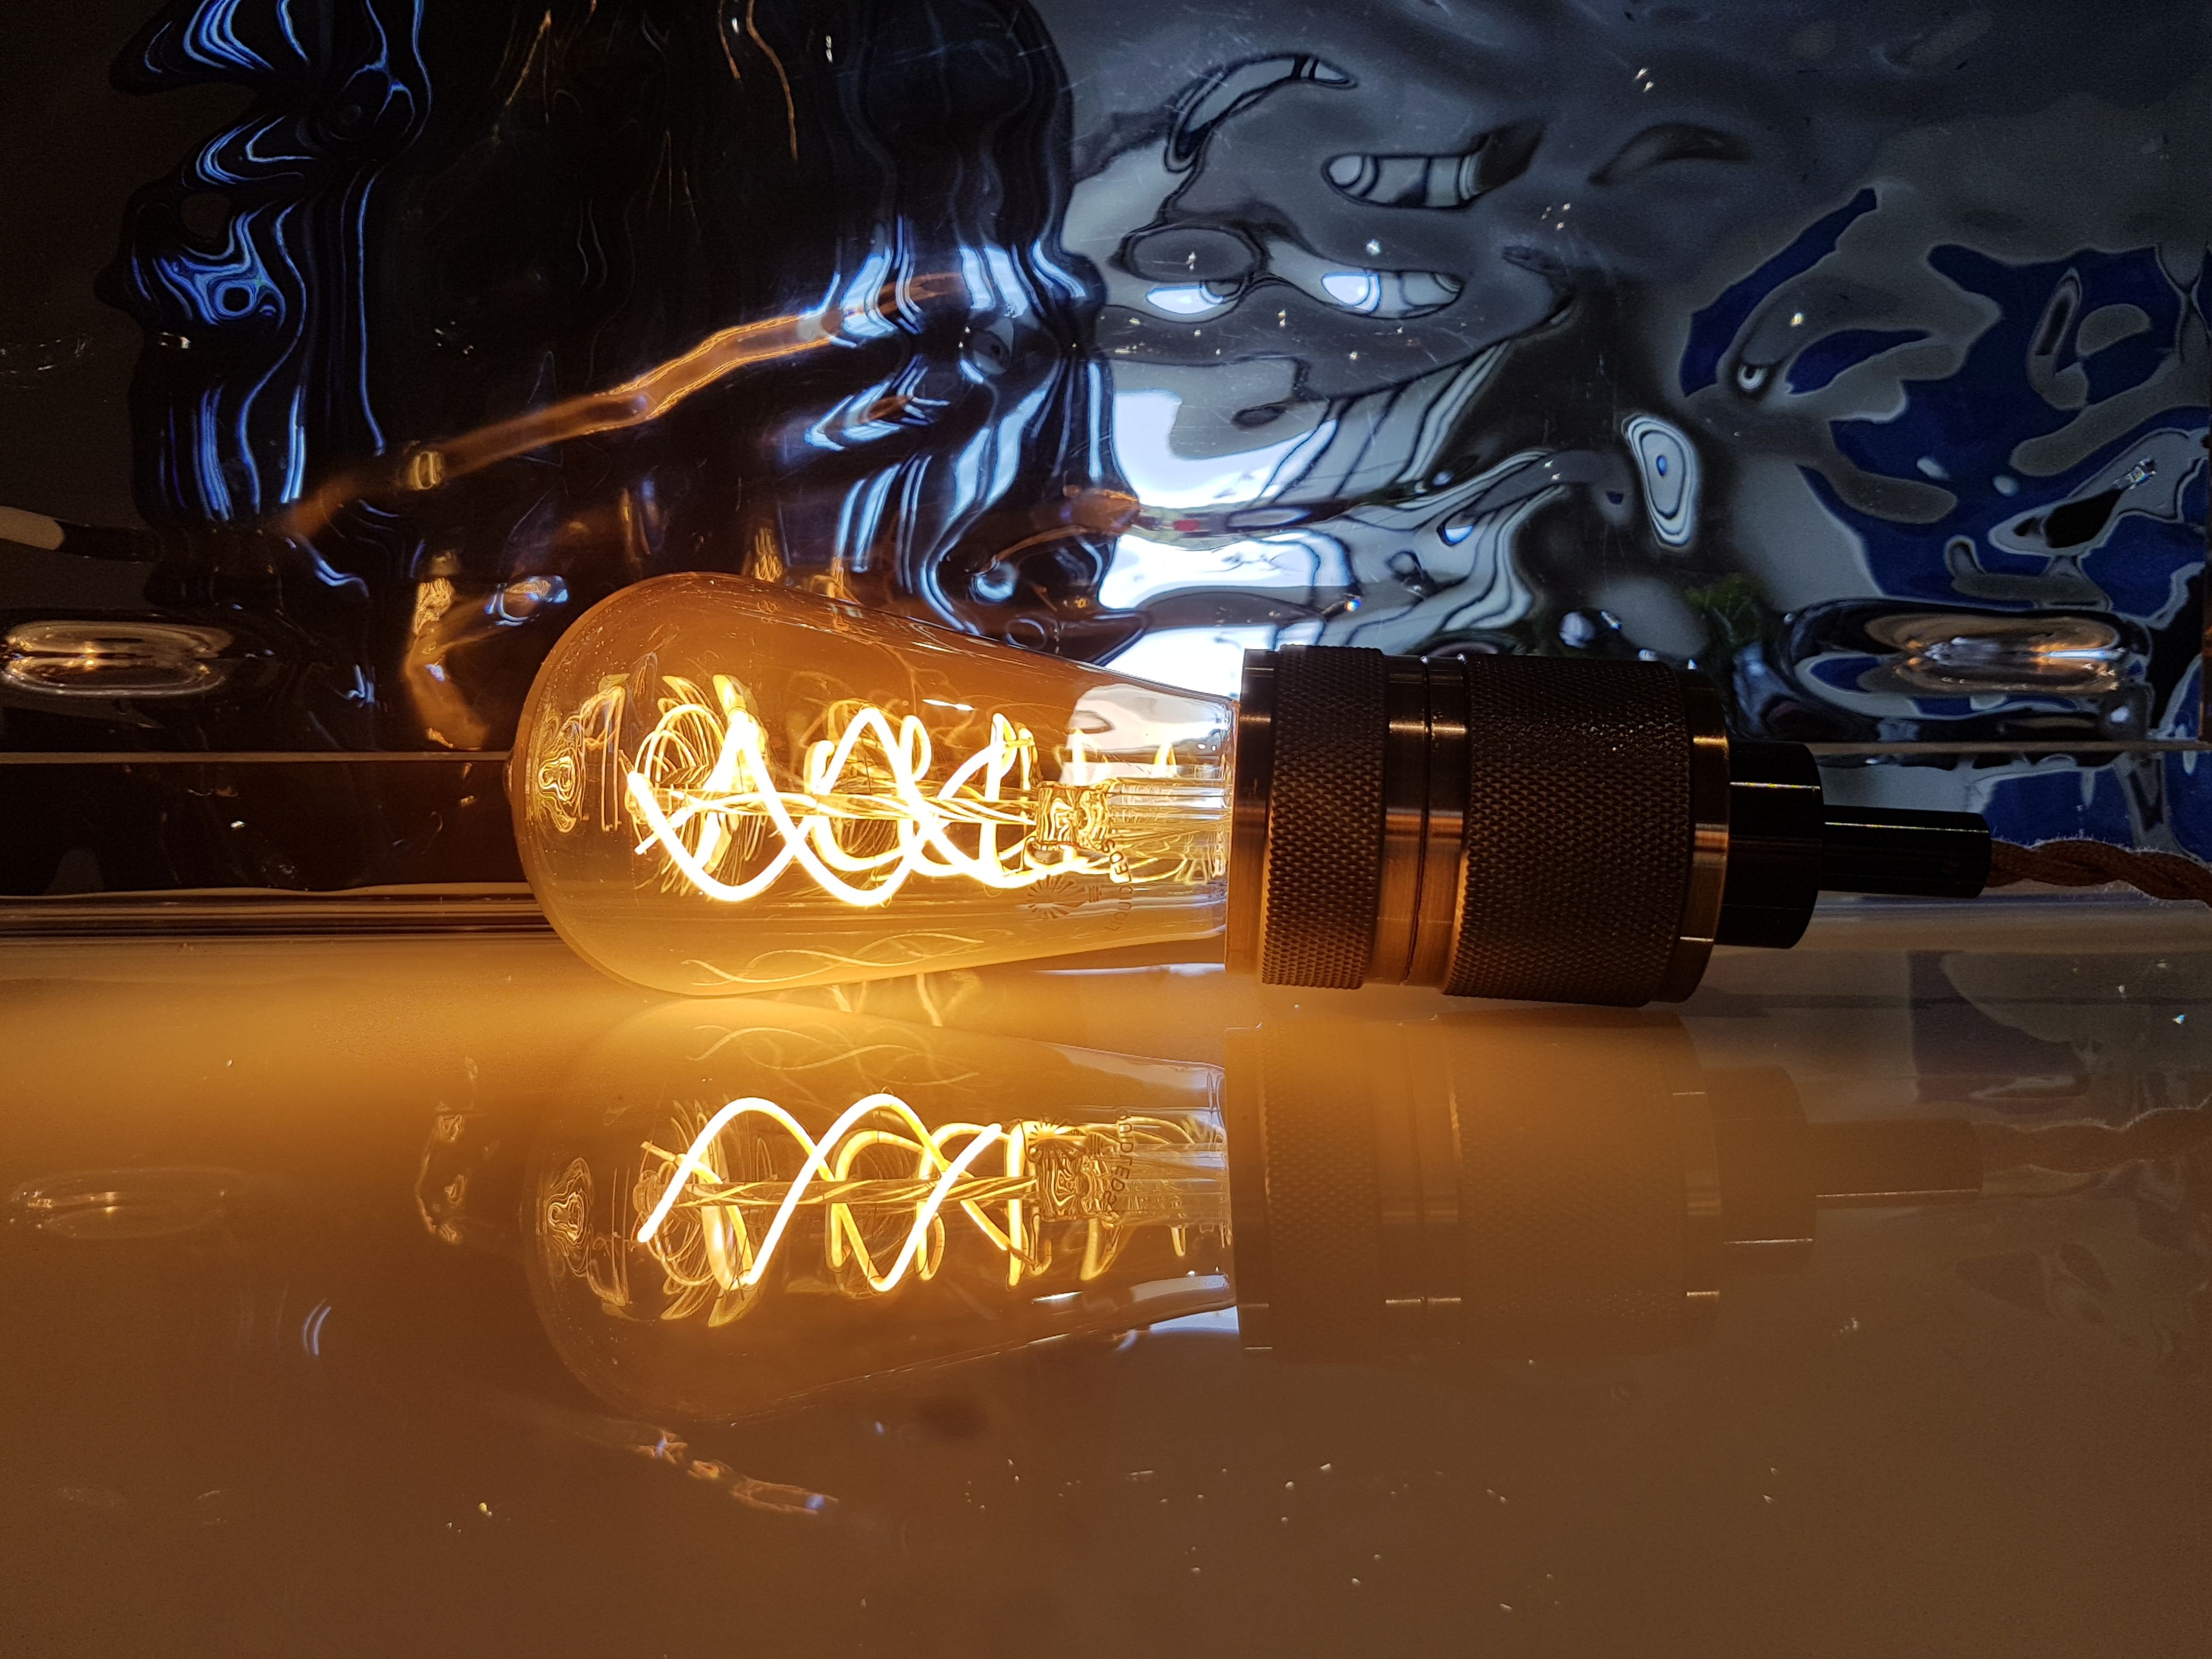 Teardrop st64 william and watson vintage edison bulb industrial light - Our 5 Watt Amber Glass Vintage Edison Spiral Led Filament Light Bulb Shop The Collection